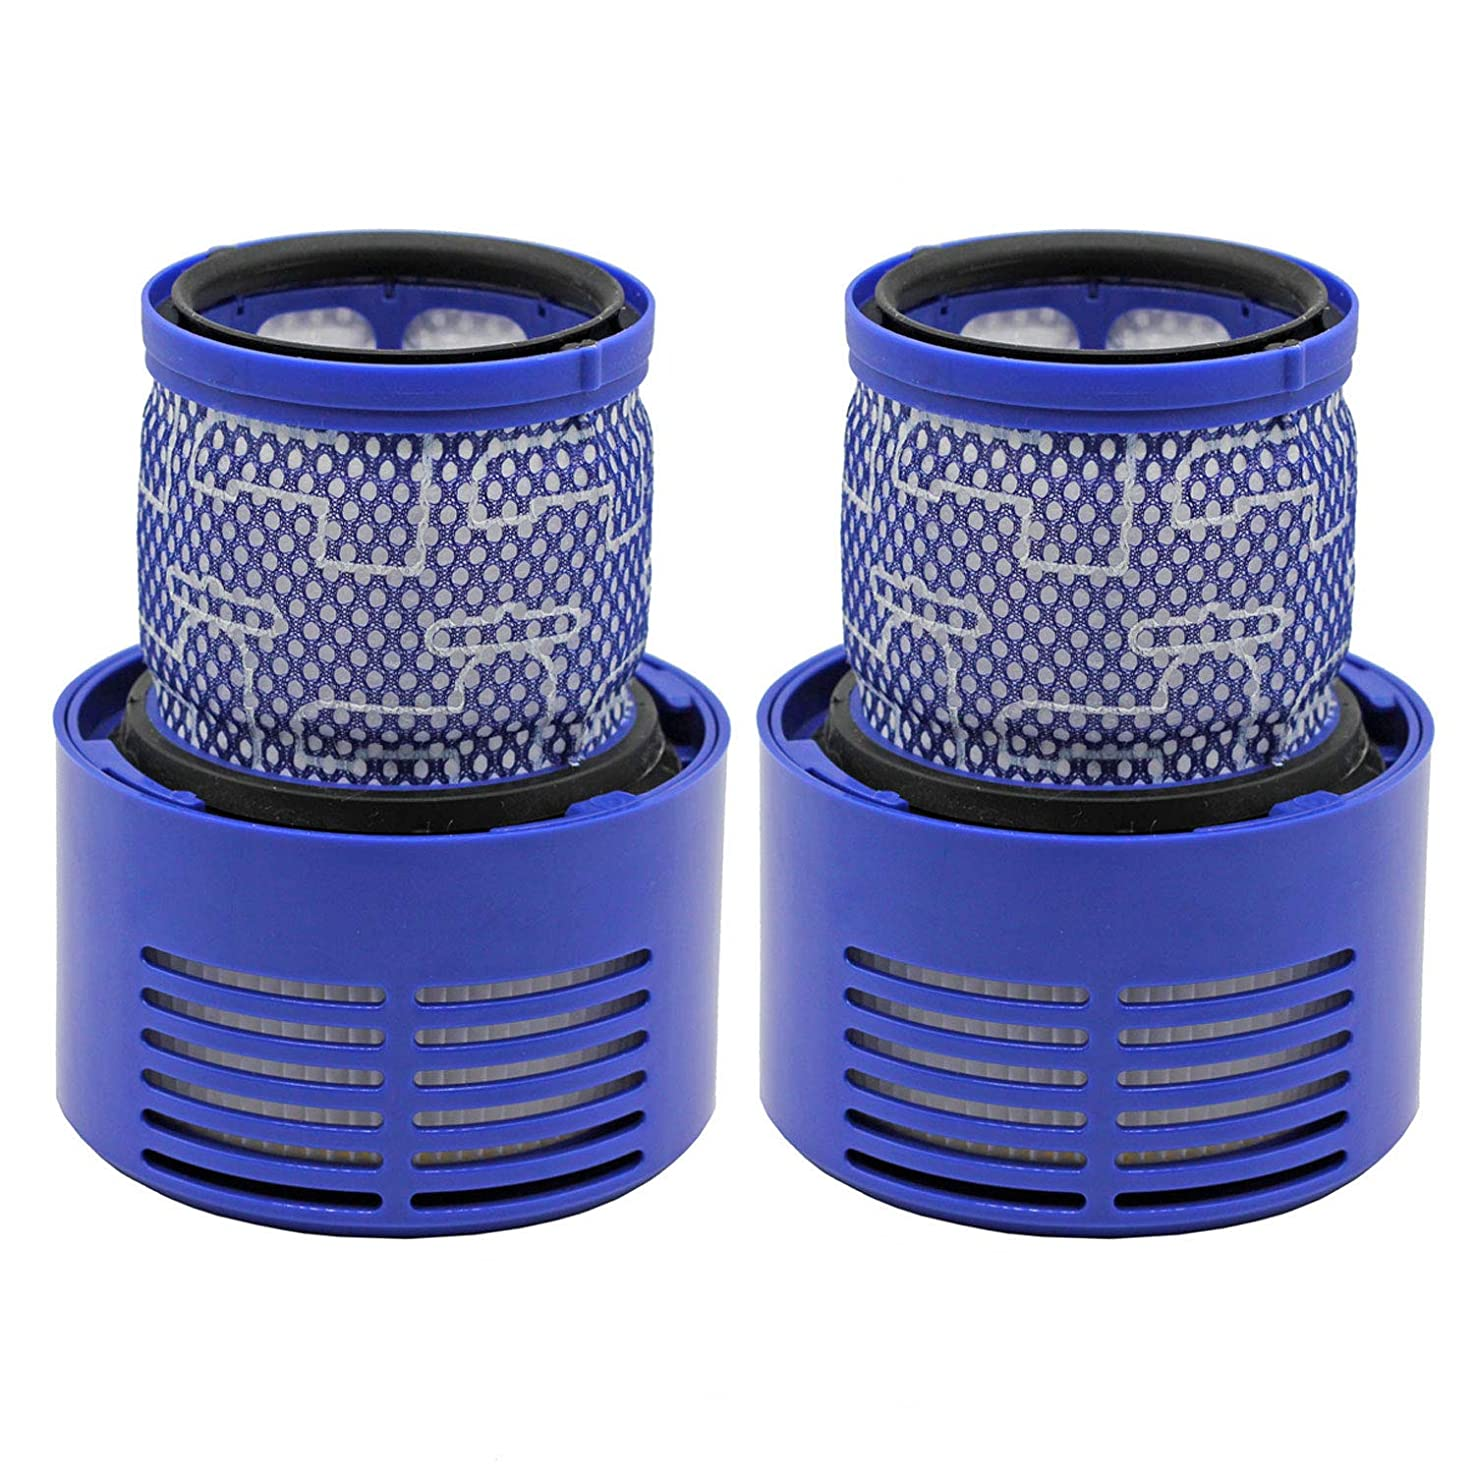 Wolfish 2 Pack Replacement Filter for Dyson V10, SV12 Cyclone Animal Absolute Total Clean Vacuum Cleaners, Replace Part # 969082-01